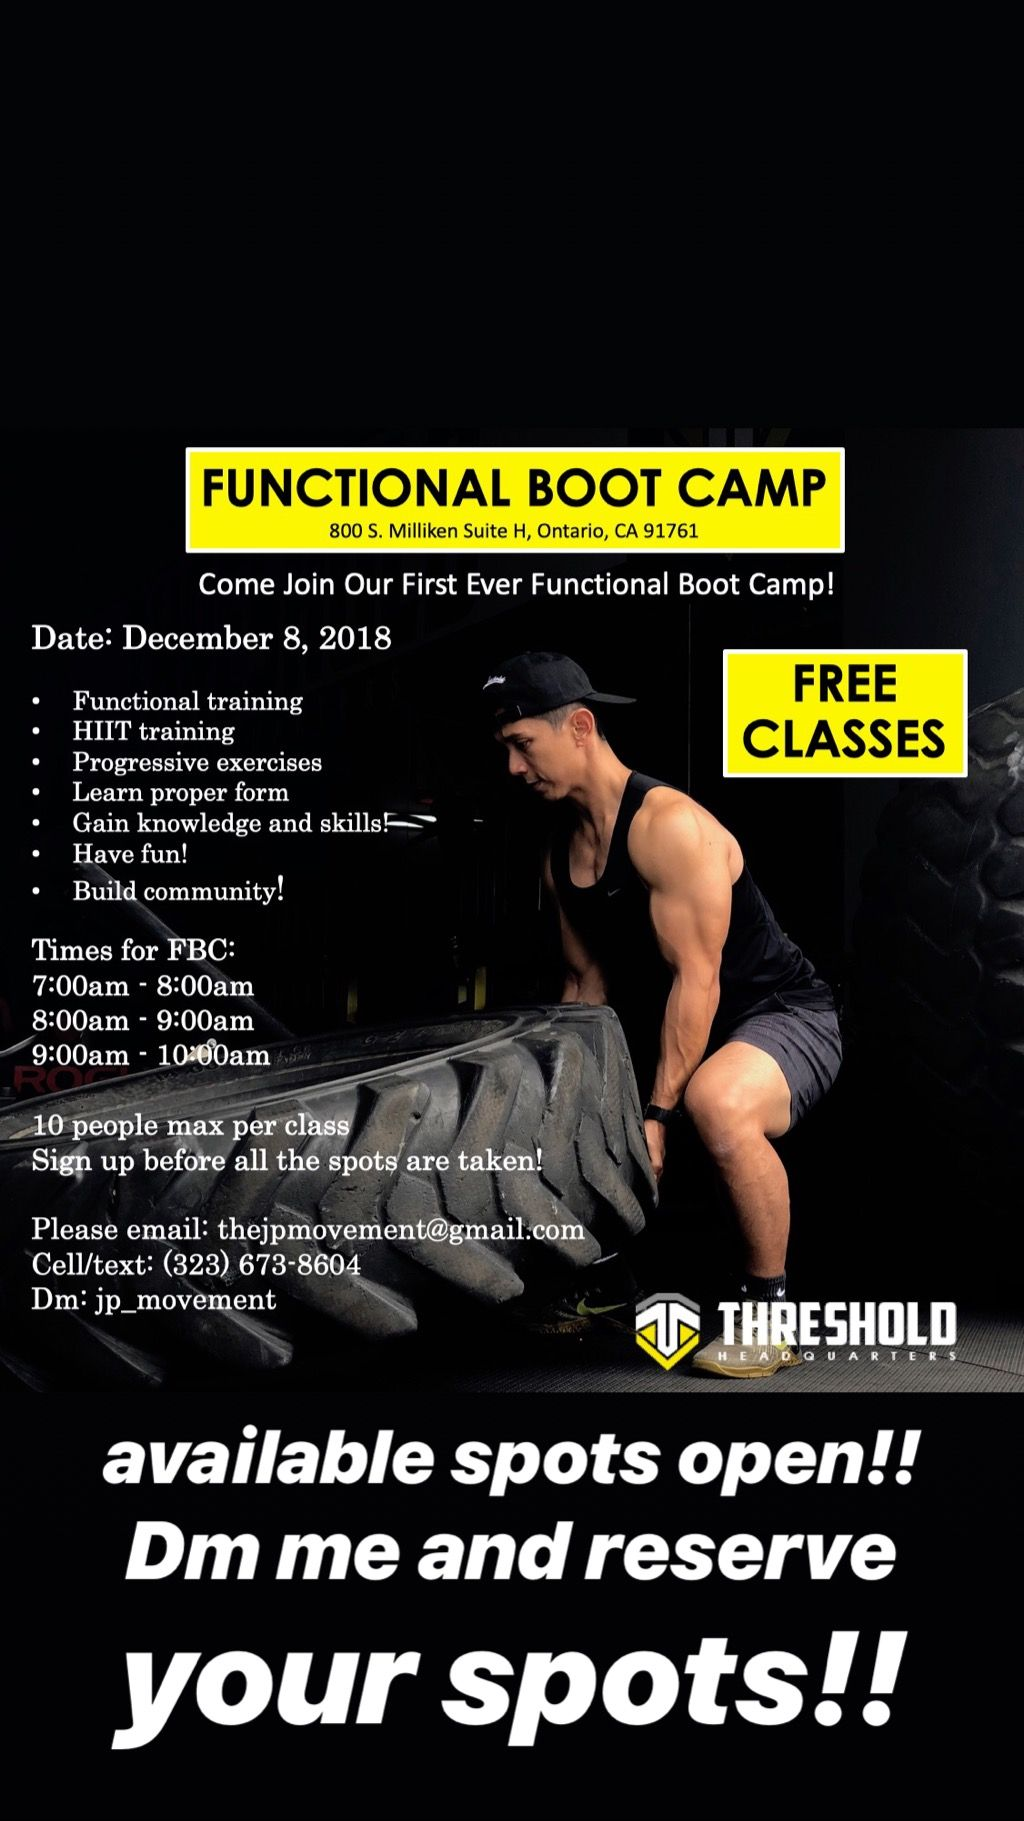 Functional boot camp